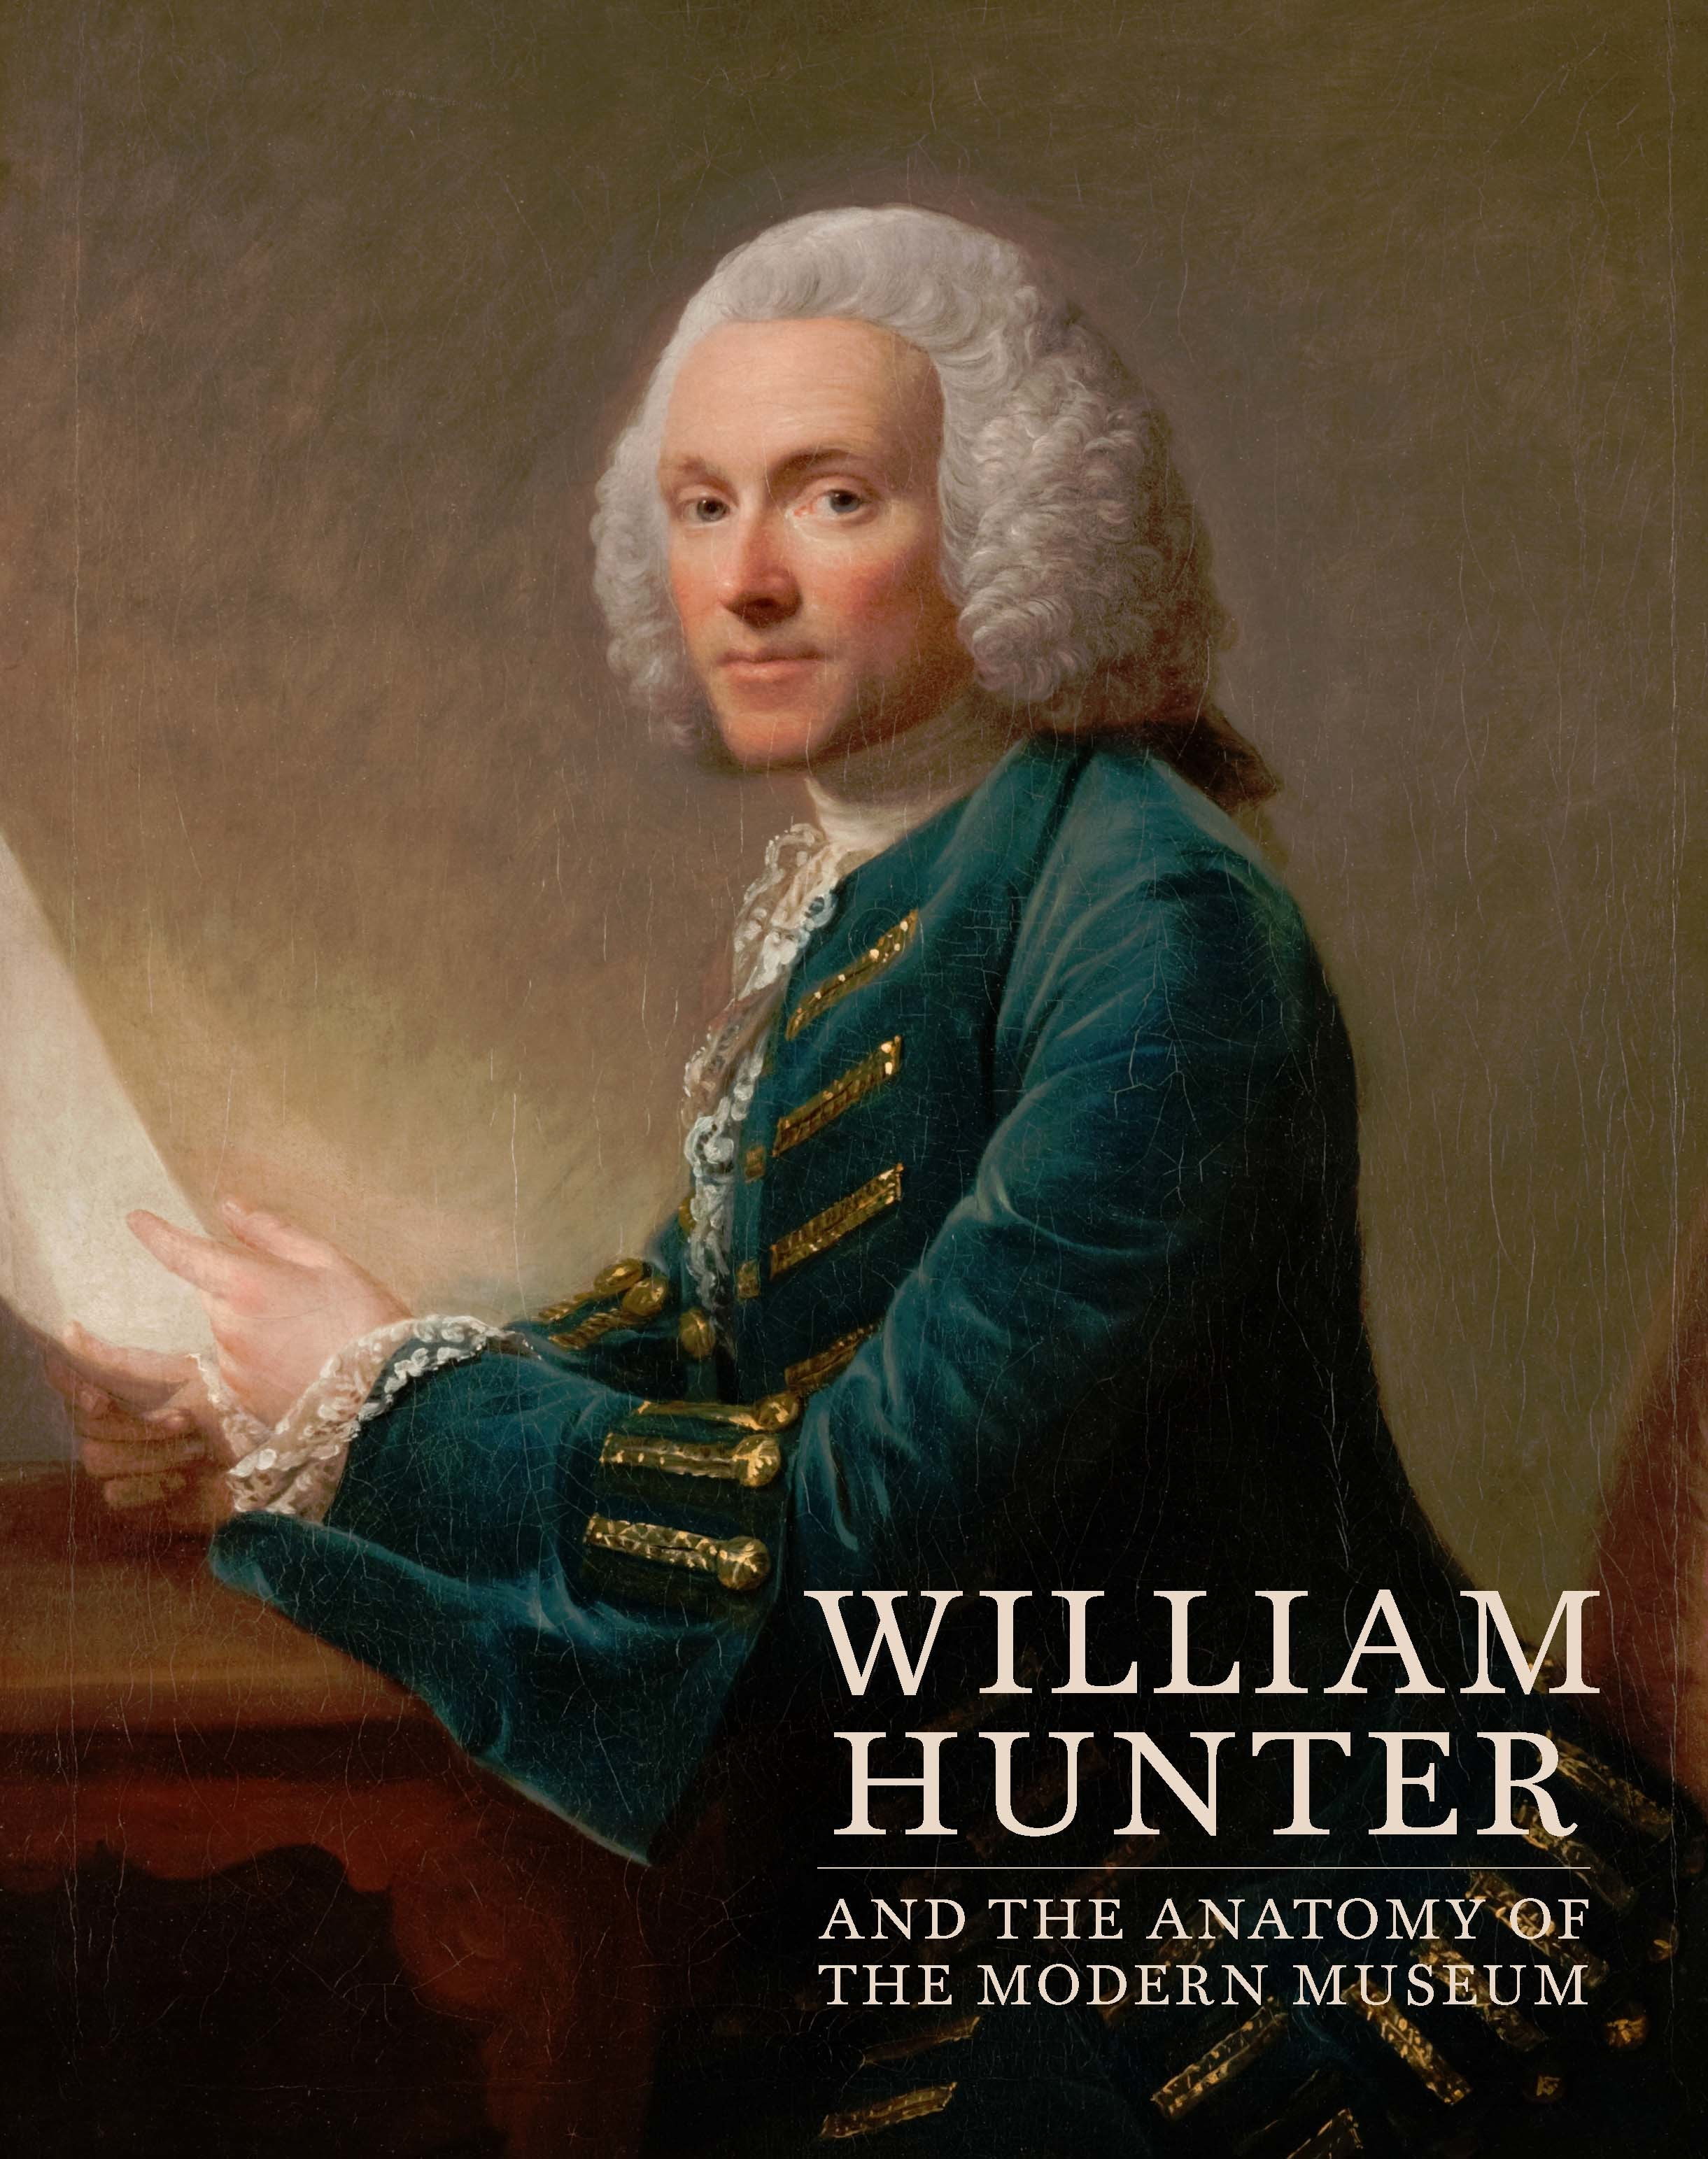 William Hunter and the Anatomy of the Modern Museum